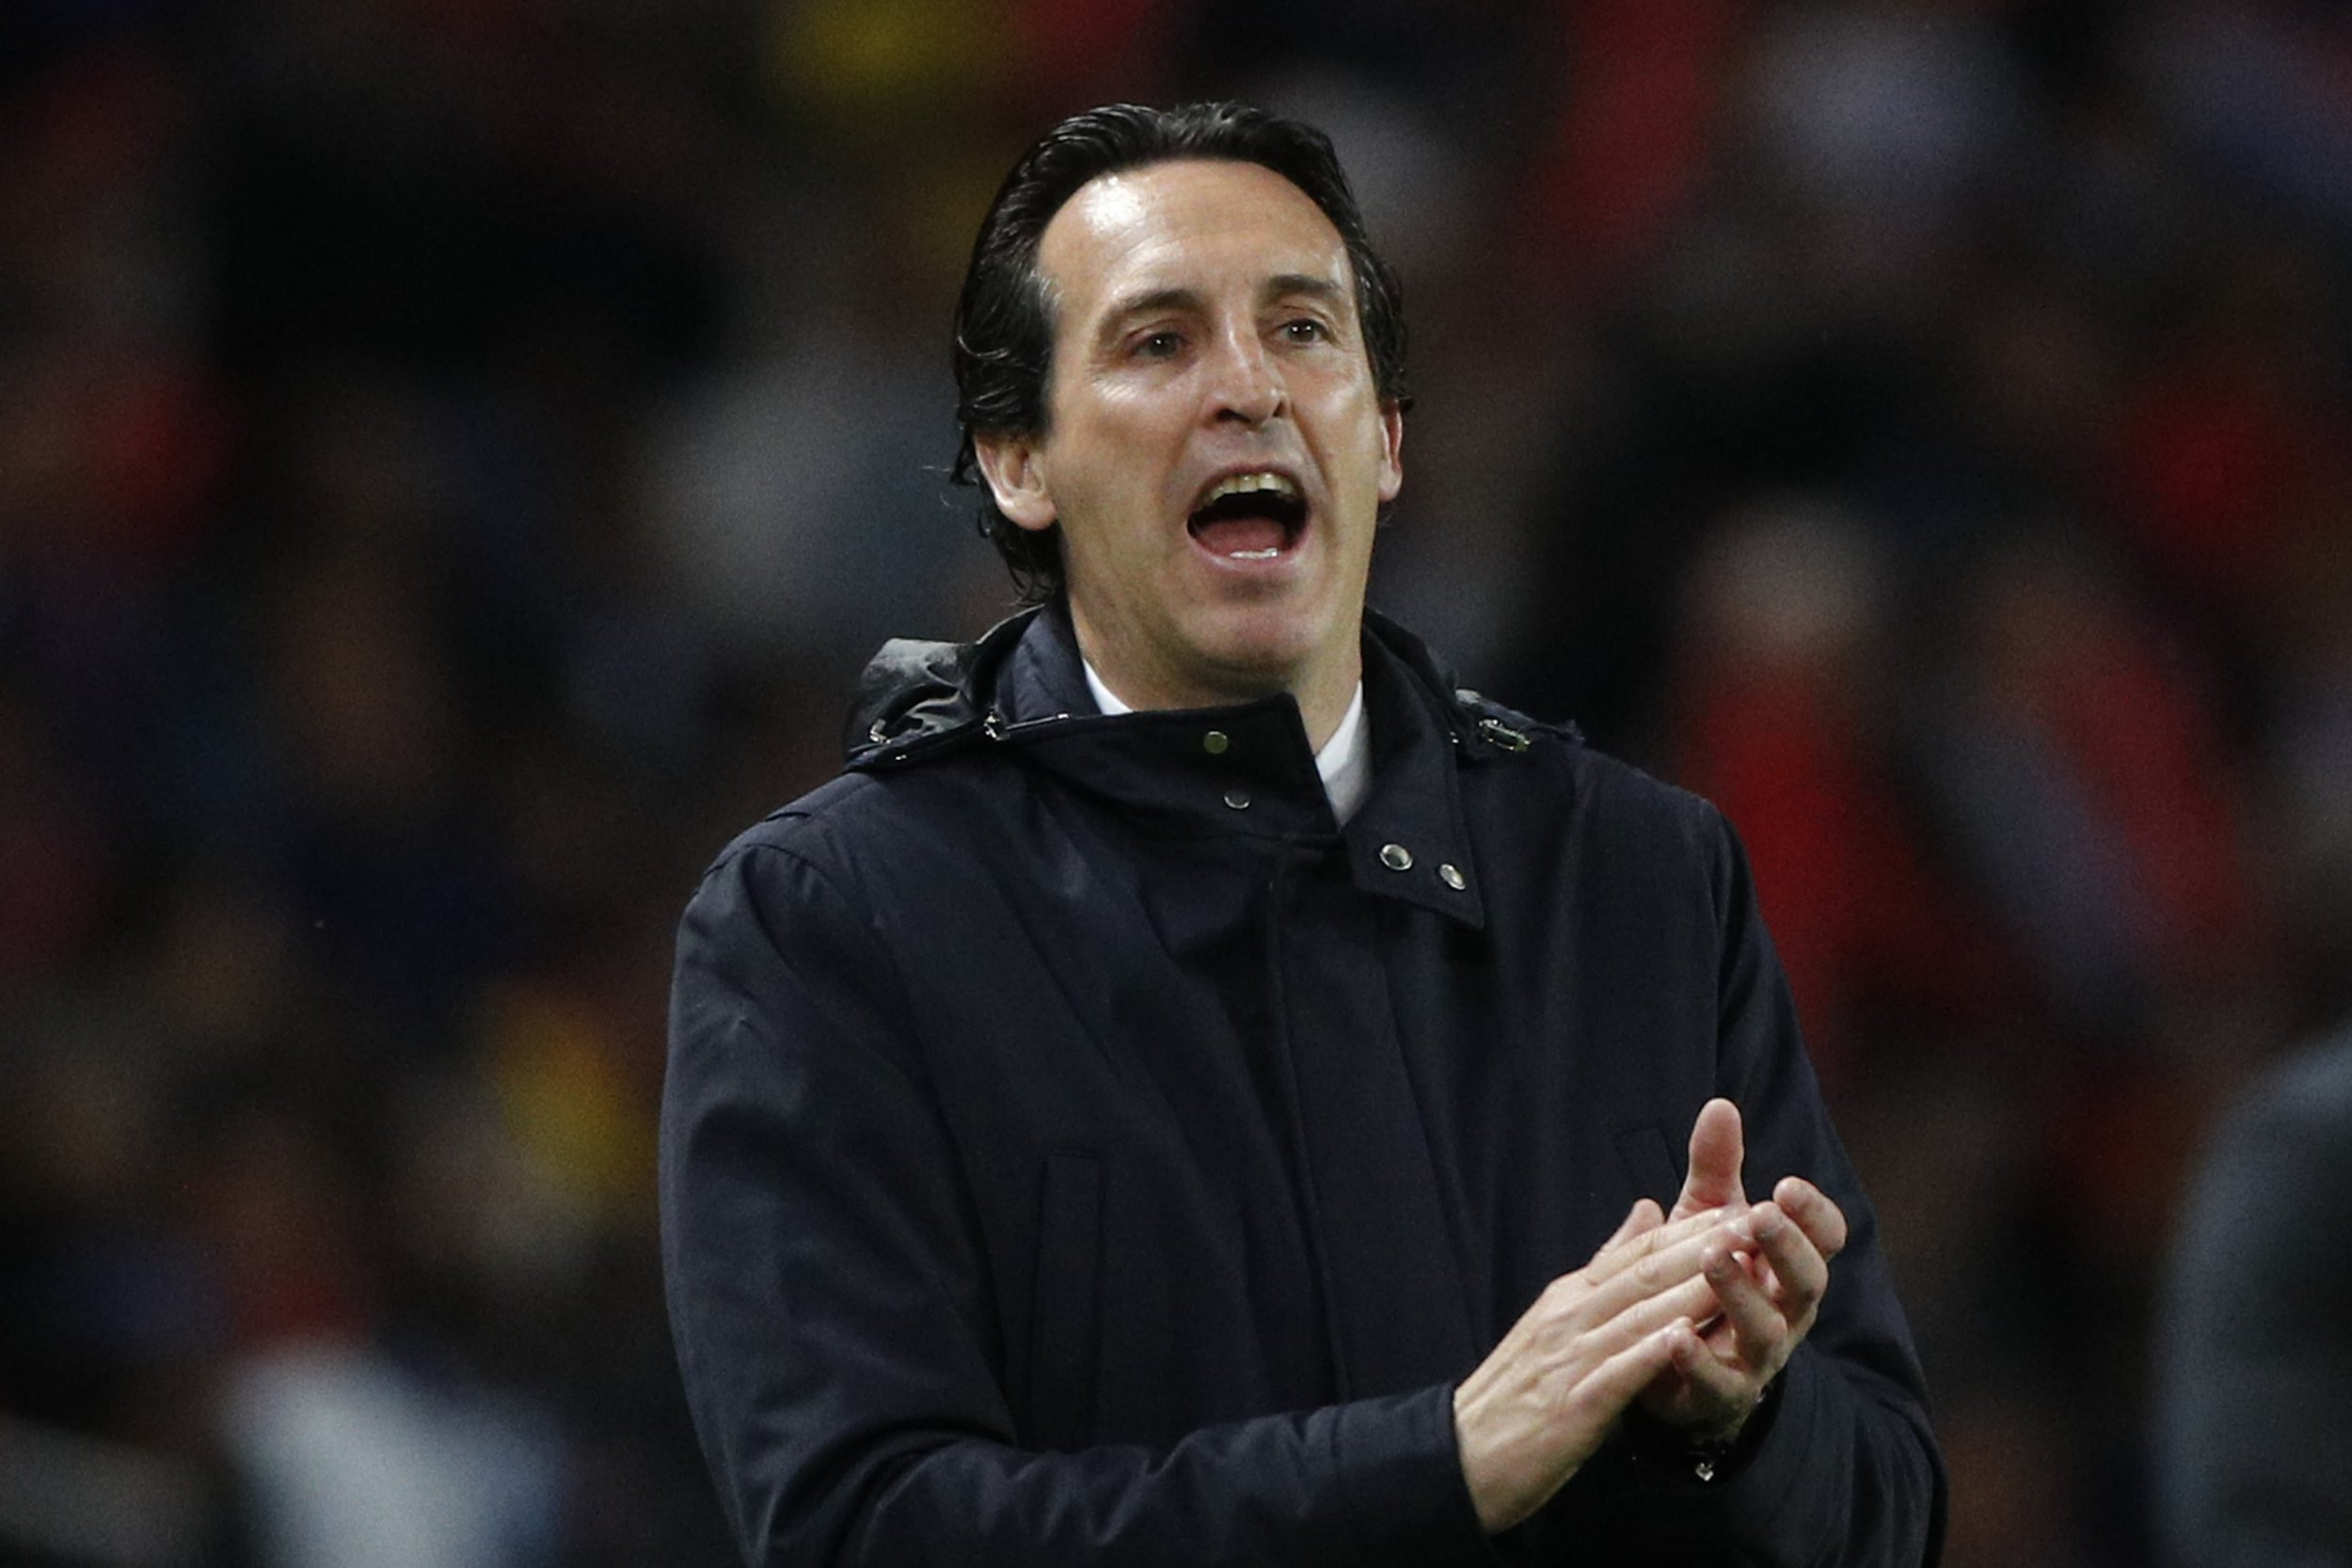 PSG head coach Unai Emery gives directions to his team during their League One soccer match between Paris Saint-Germain and Stade Rennais at the Parc des Princes stadium in Paris, Saturday May 12, 2018. (AP Photo/Christophe Ena)